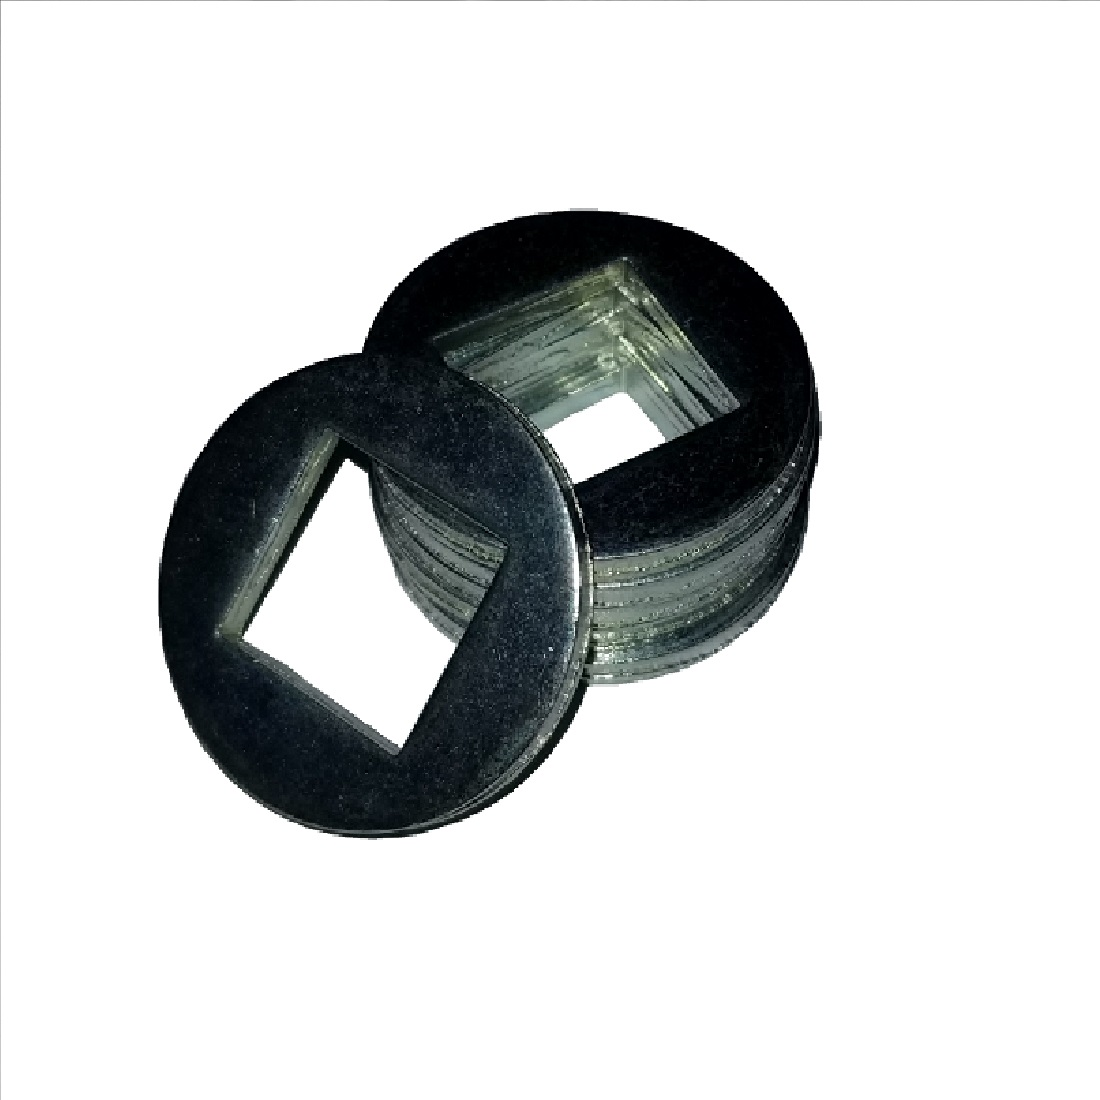 Square ID Washer - 0.343 ID, 1.375 OD, 0.050 Thick, Stainless - 300 Series